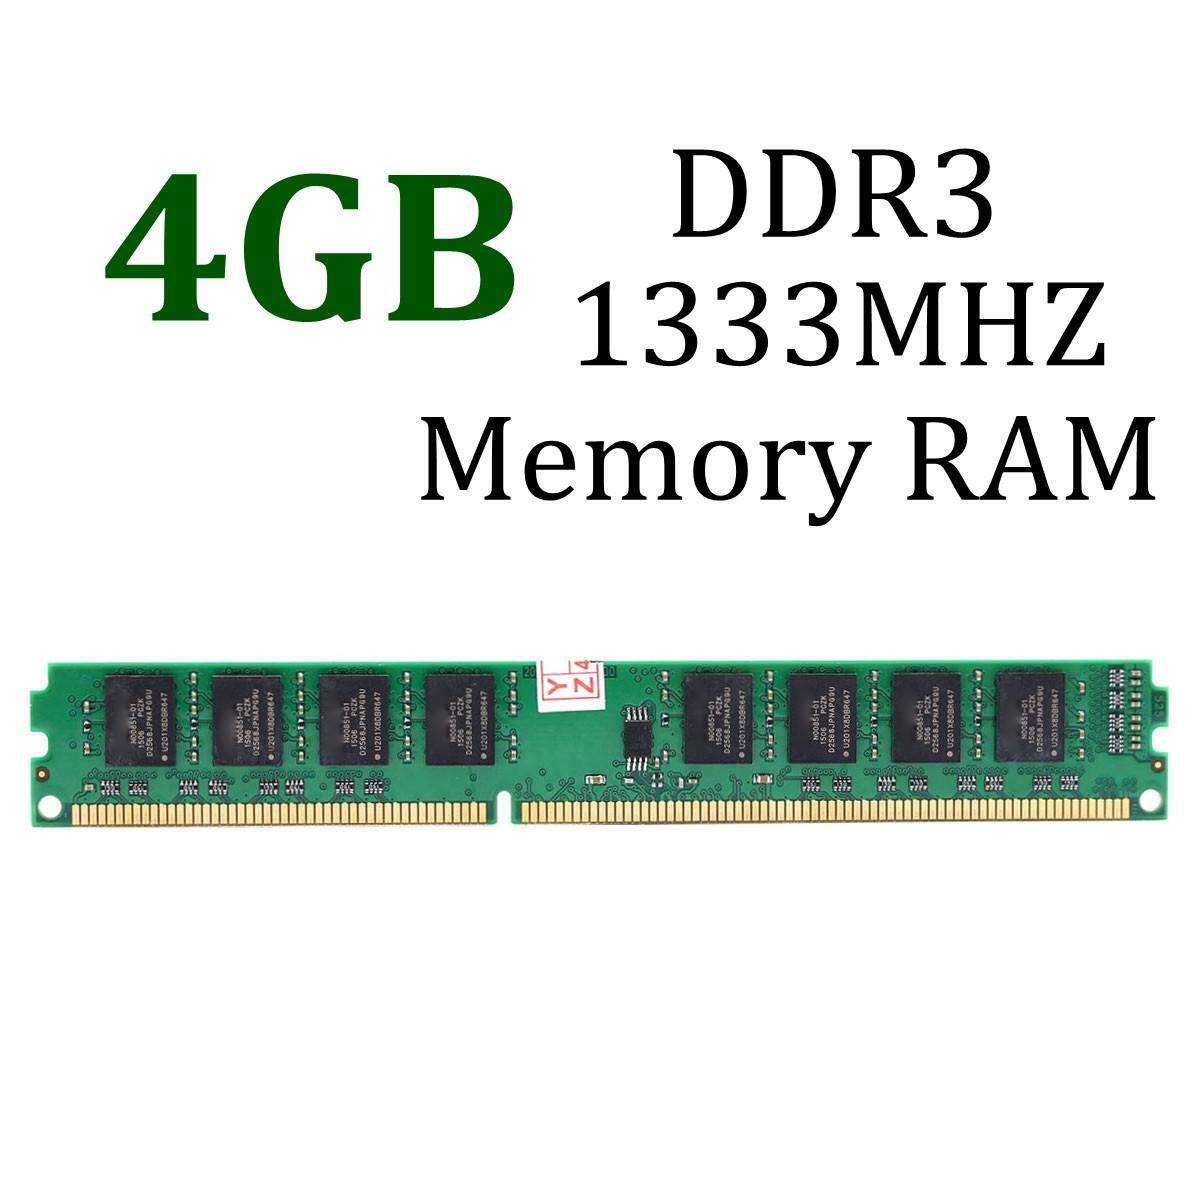 4GB DDR3 PC3-10600 DDR3-1333 MHZ 240-Pin Desktop PC DIMM Memory RAM 1.5V